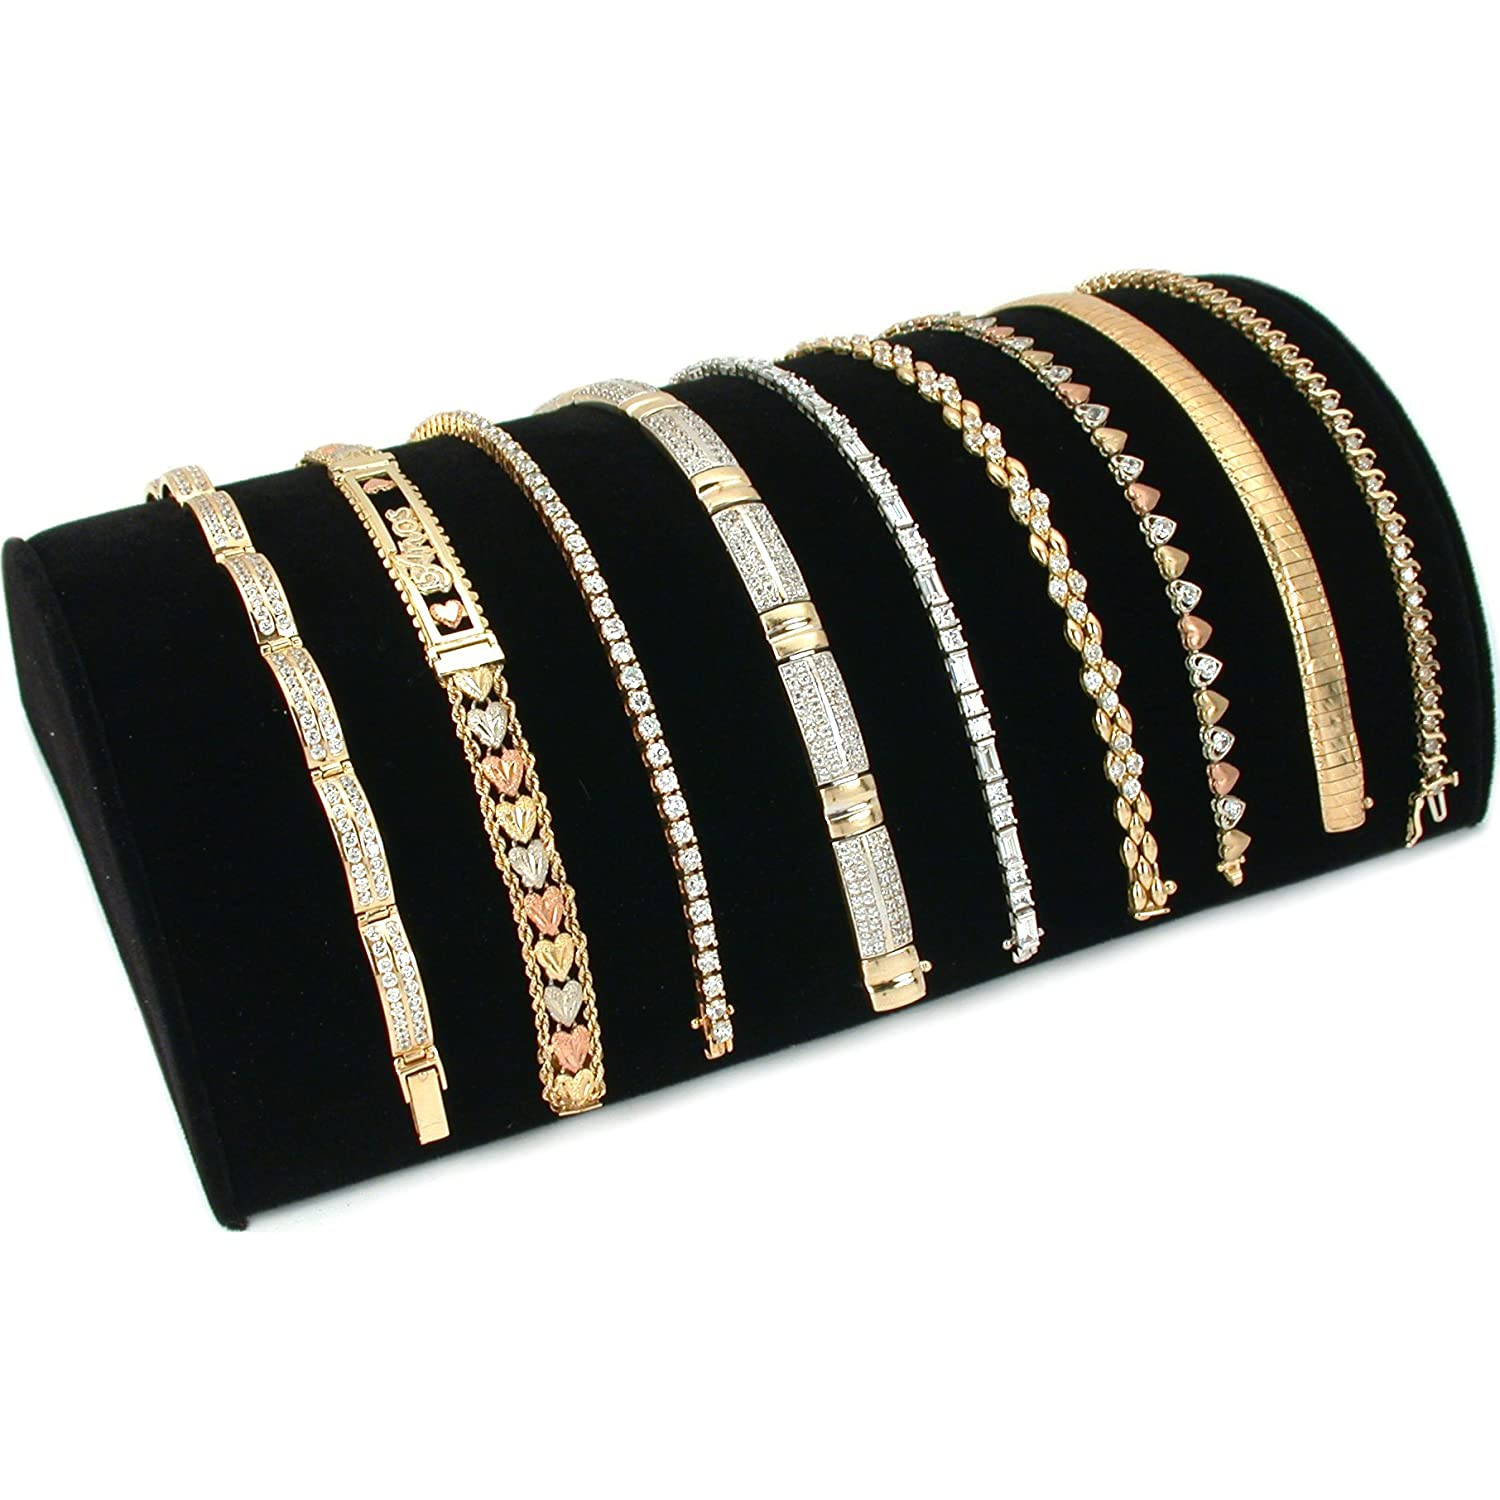 Black Velvet Half Moon Bracelet Showcase Display Stand Bejeweled Display 230BK